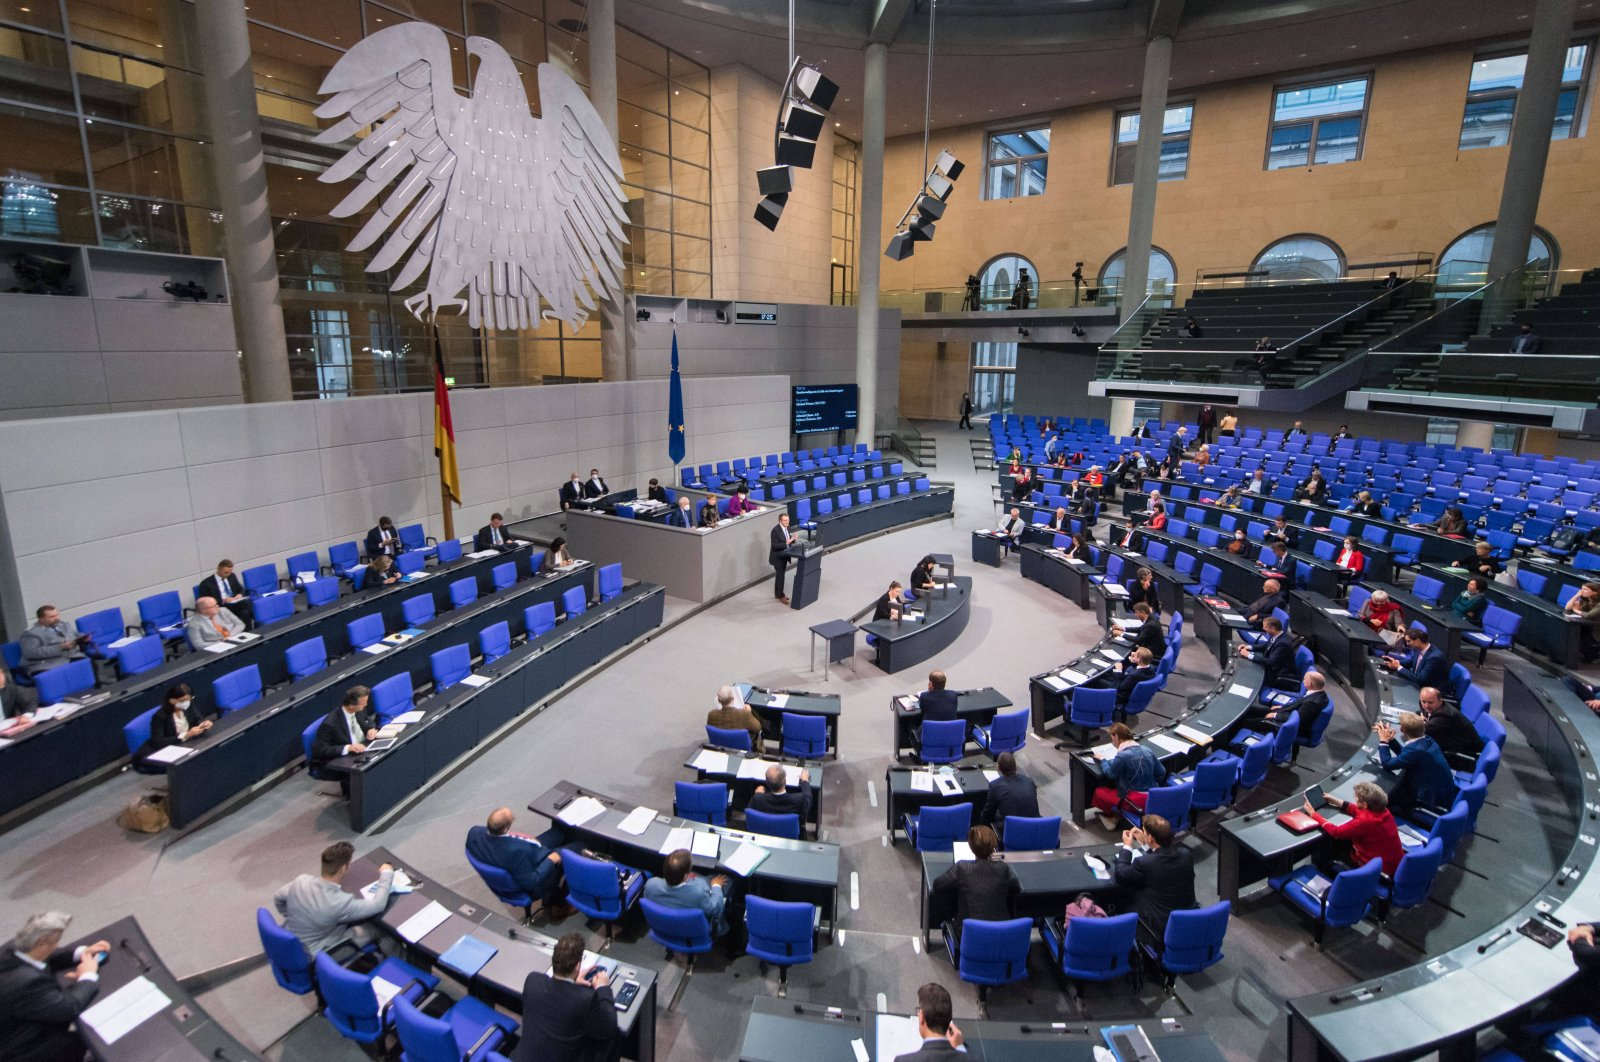 A plenary session is in progress at the German parliament in Berlin, Oct. 8, 2020 (Reuters Photo)